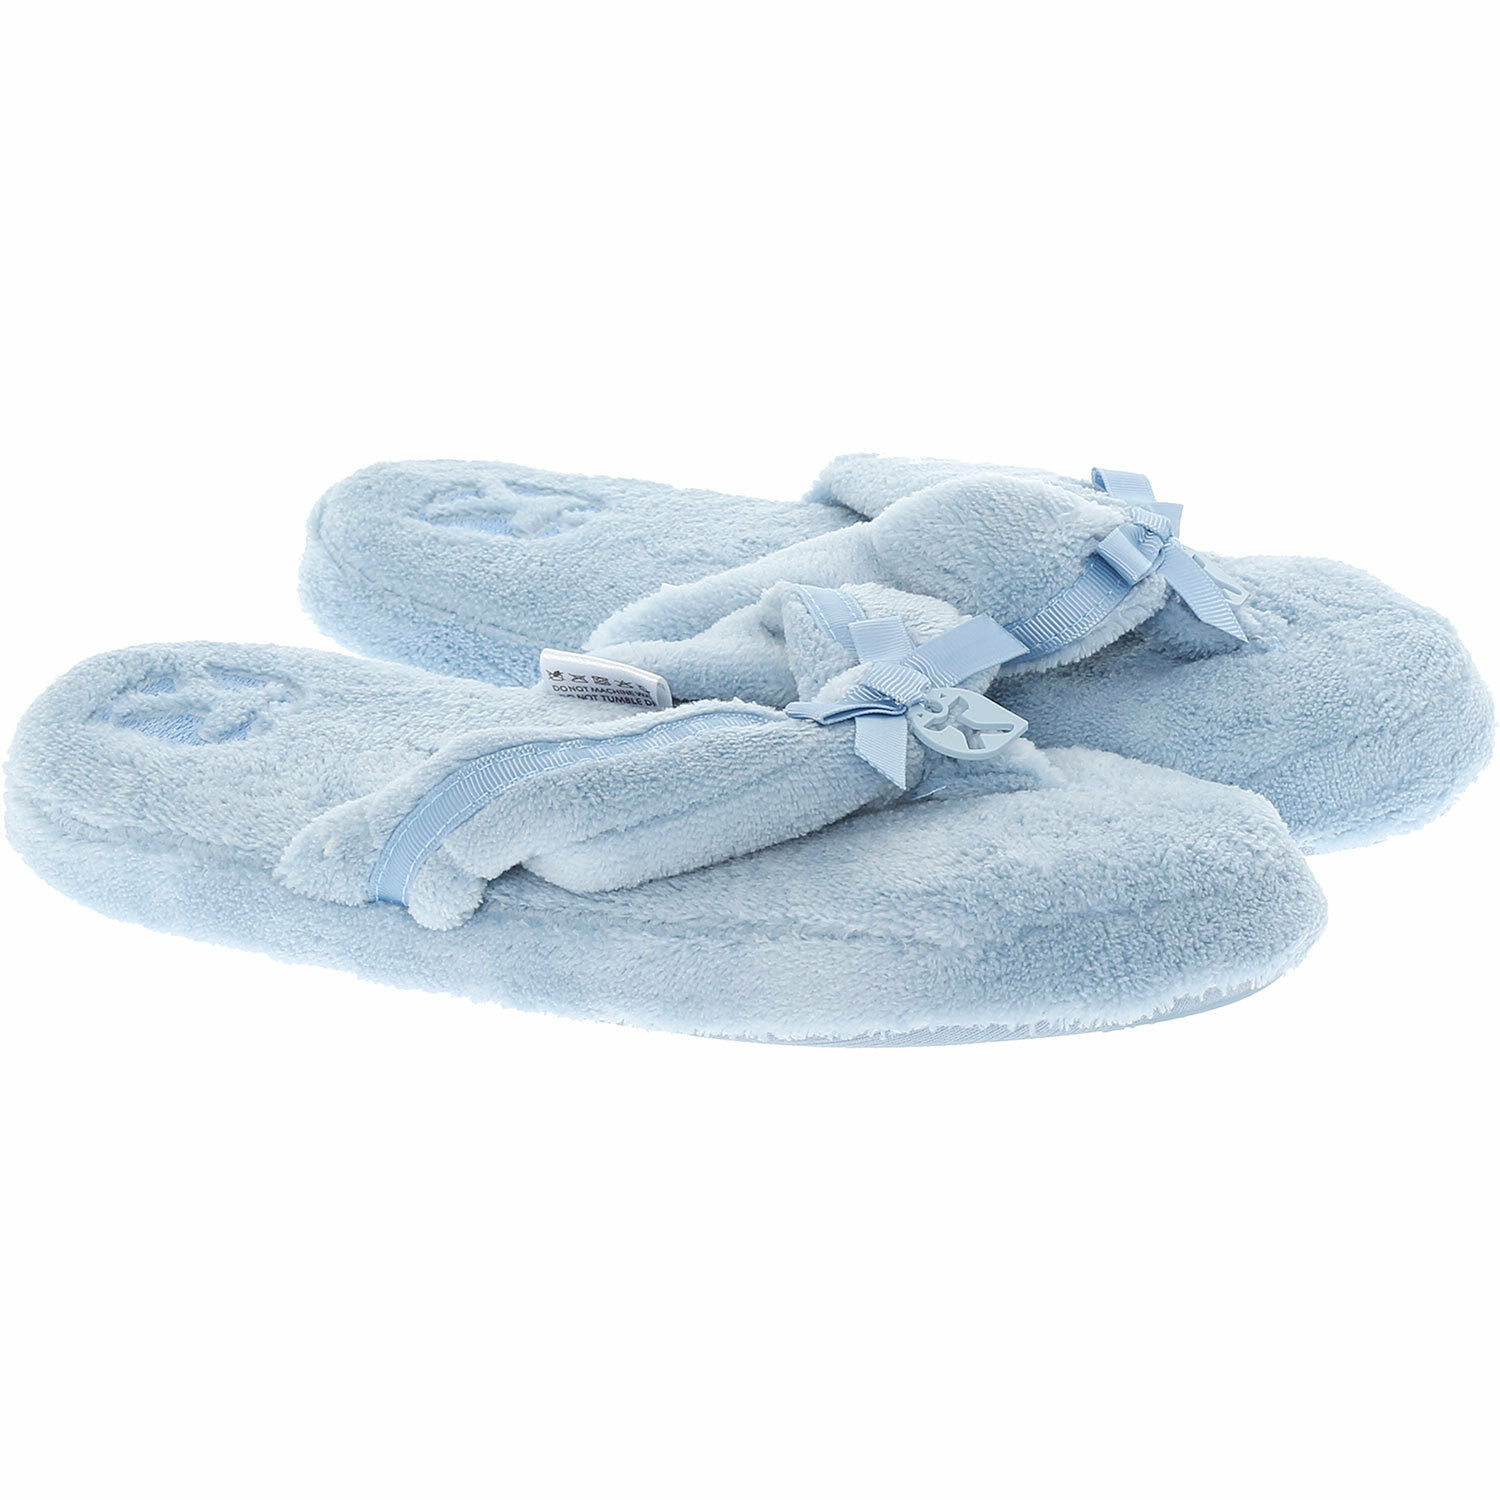 Bedroom Athletics Slippers Powder Blue Thongs Style with a Bow size UK 7 - New